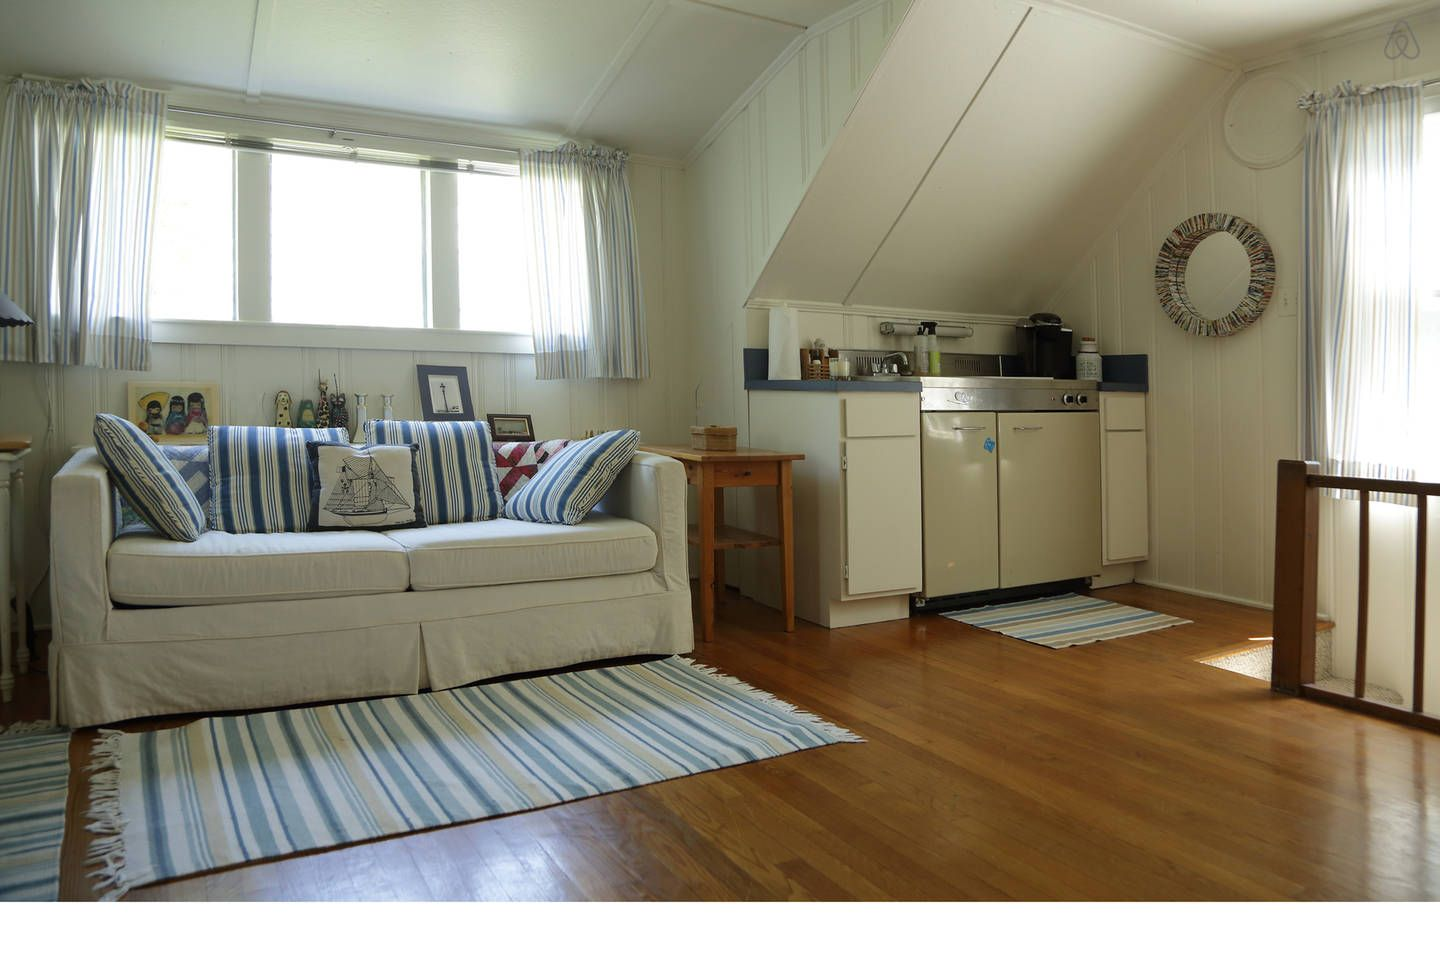 Charming Studio Apt Above Garage In Virginia Beach Small Dream Homes Home Apartments For Rent